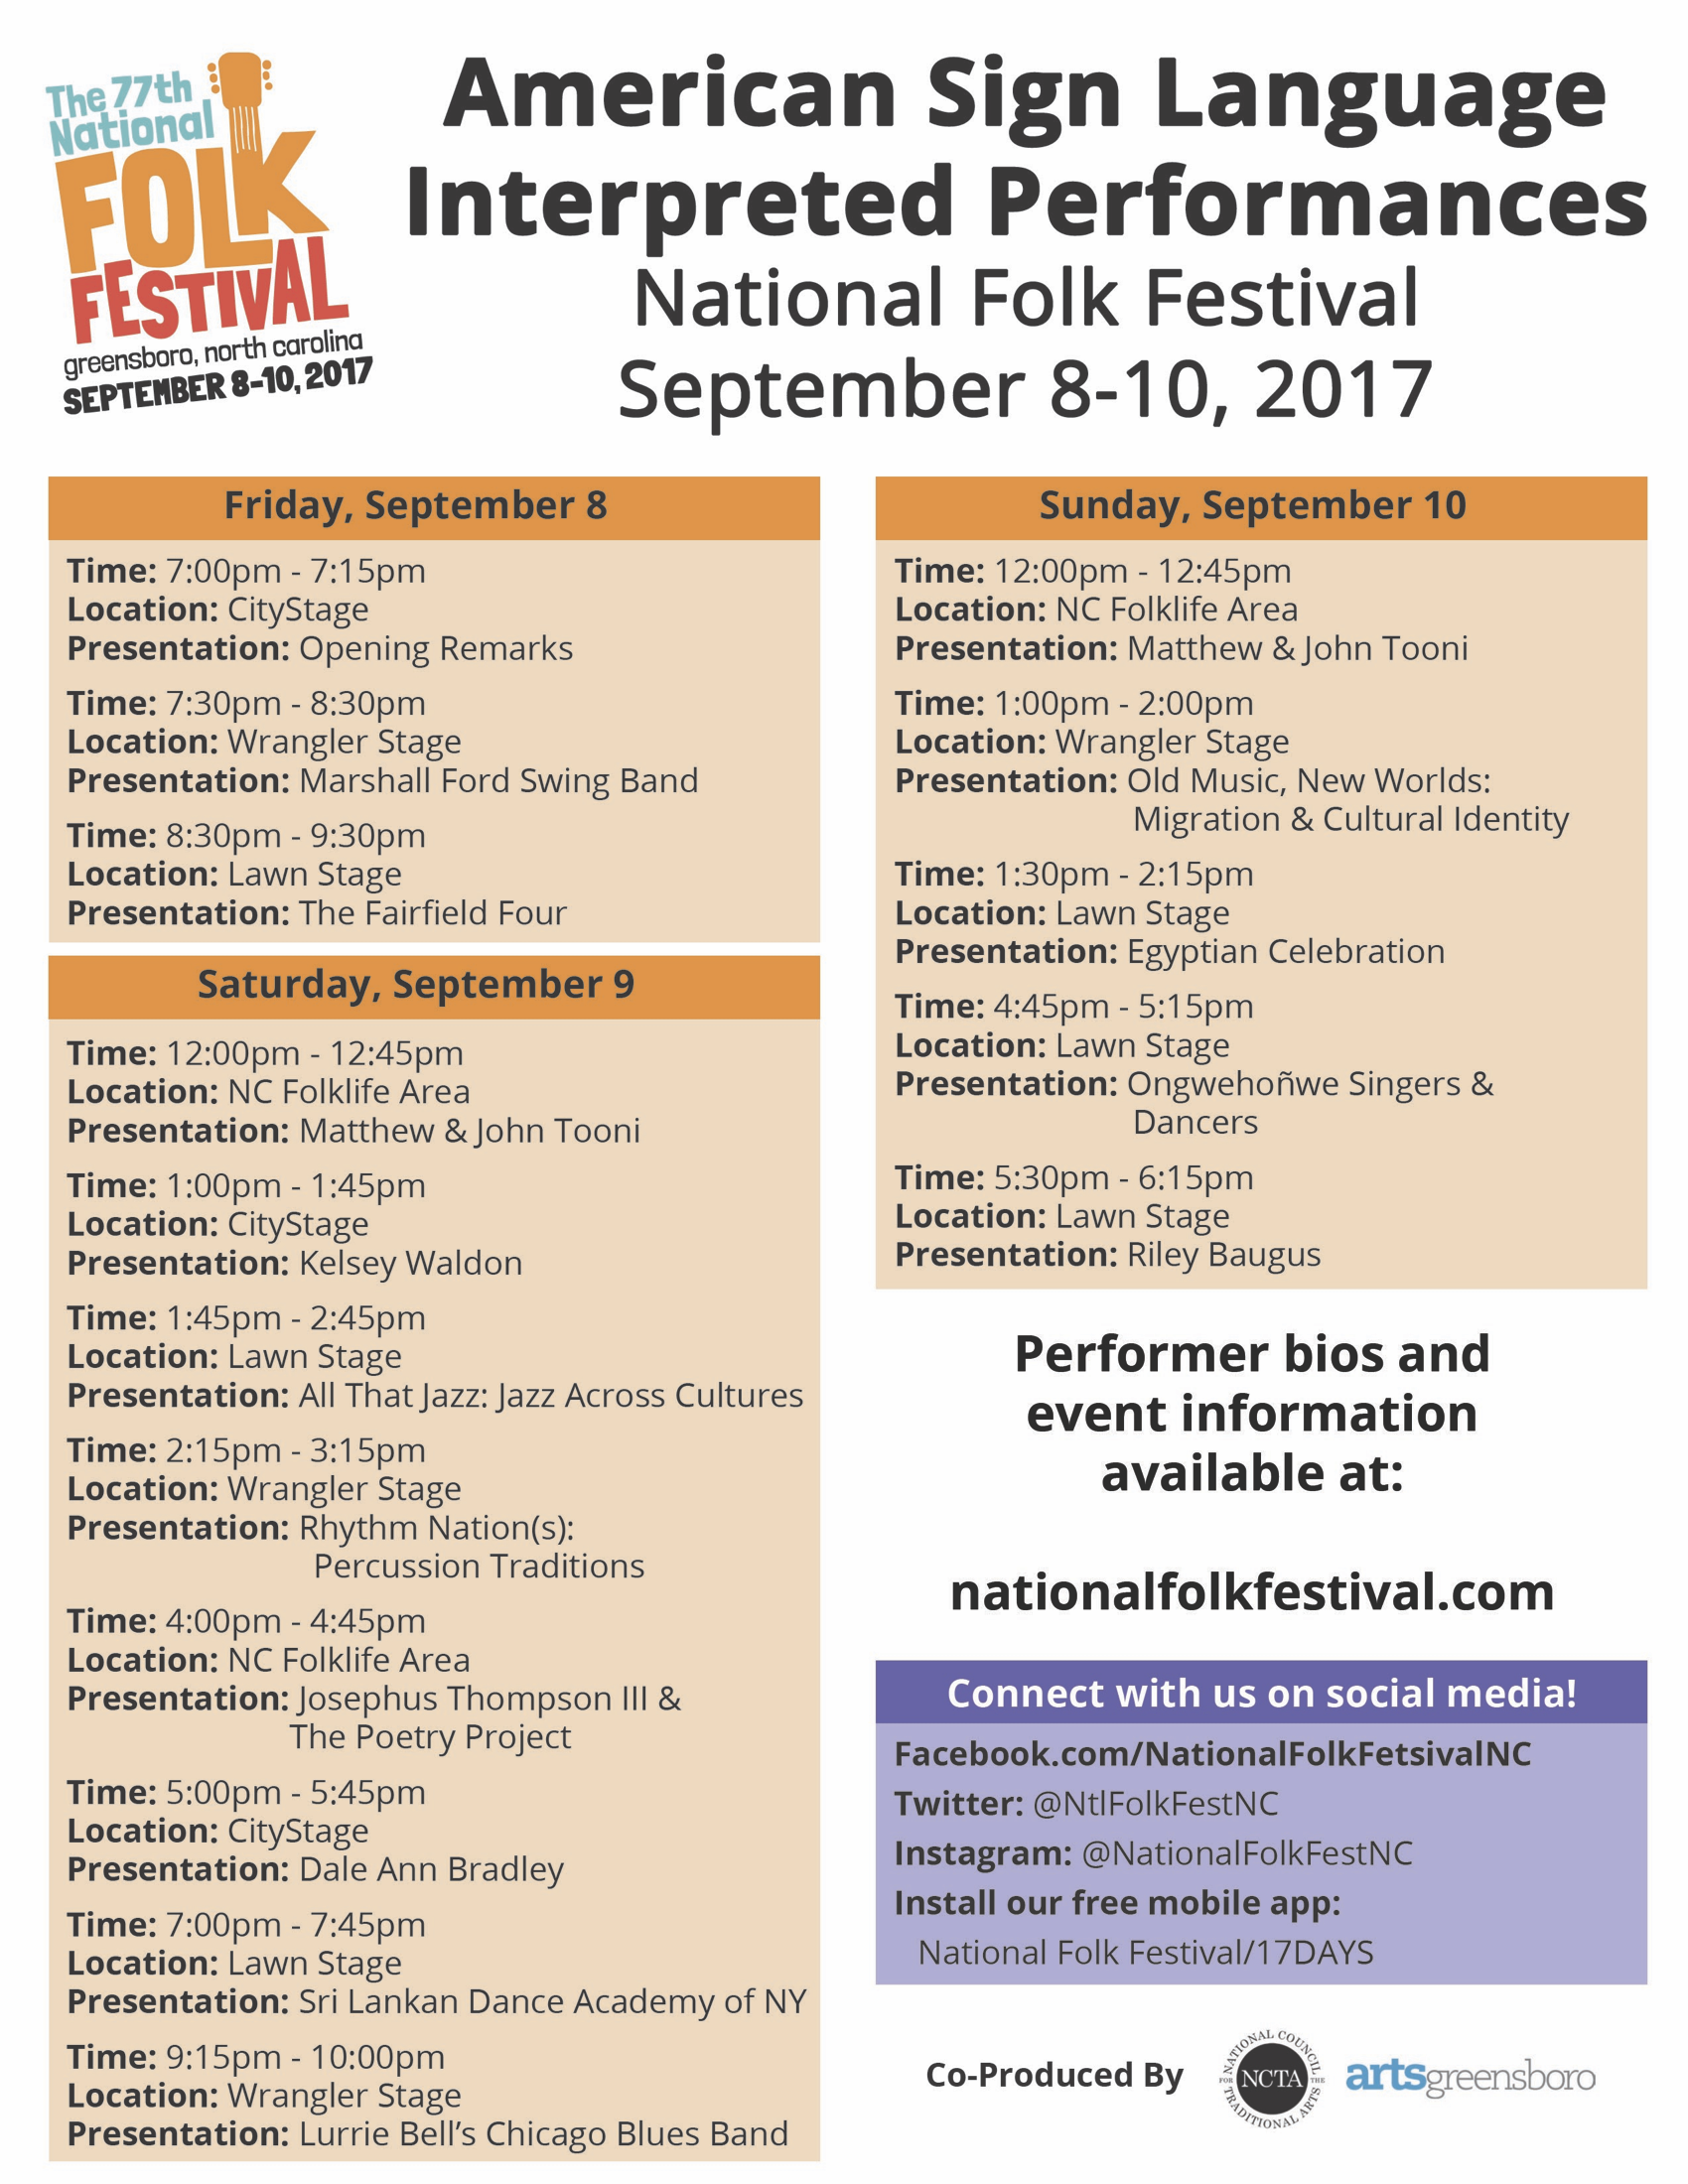 2017 NFF ASL Performance Schedule.png